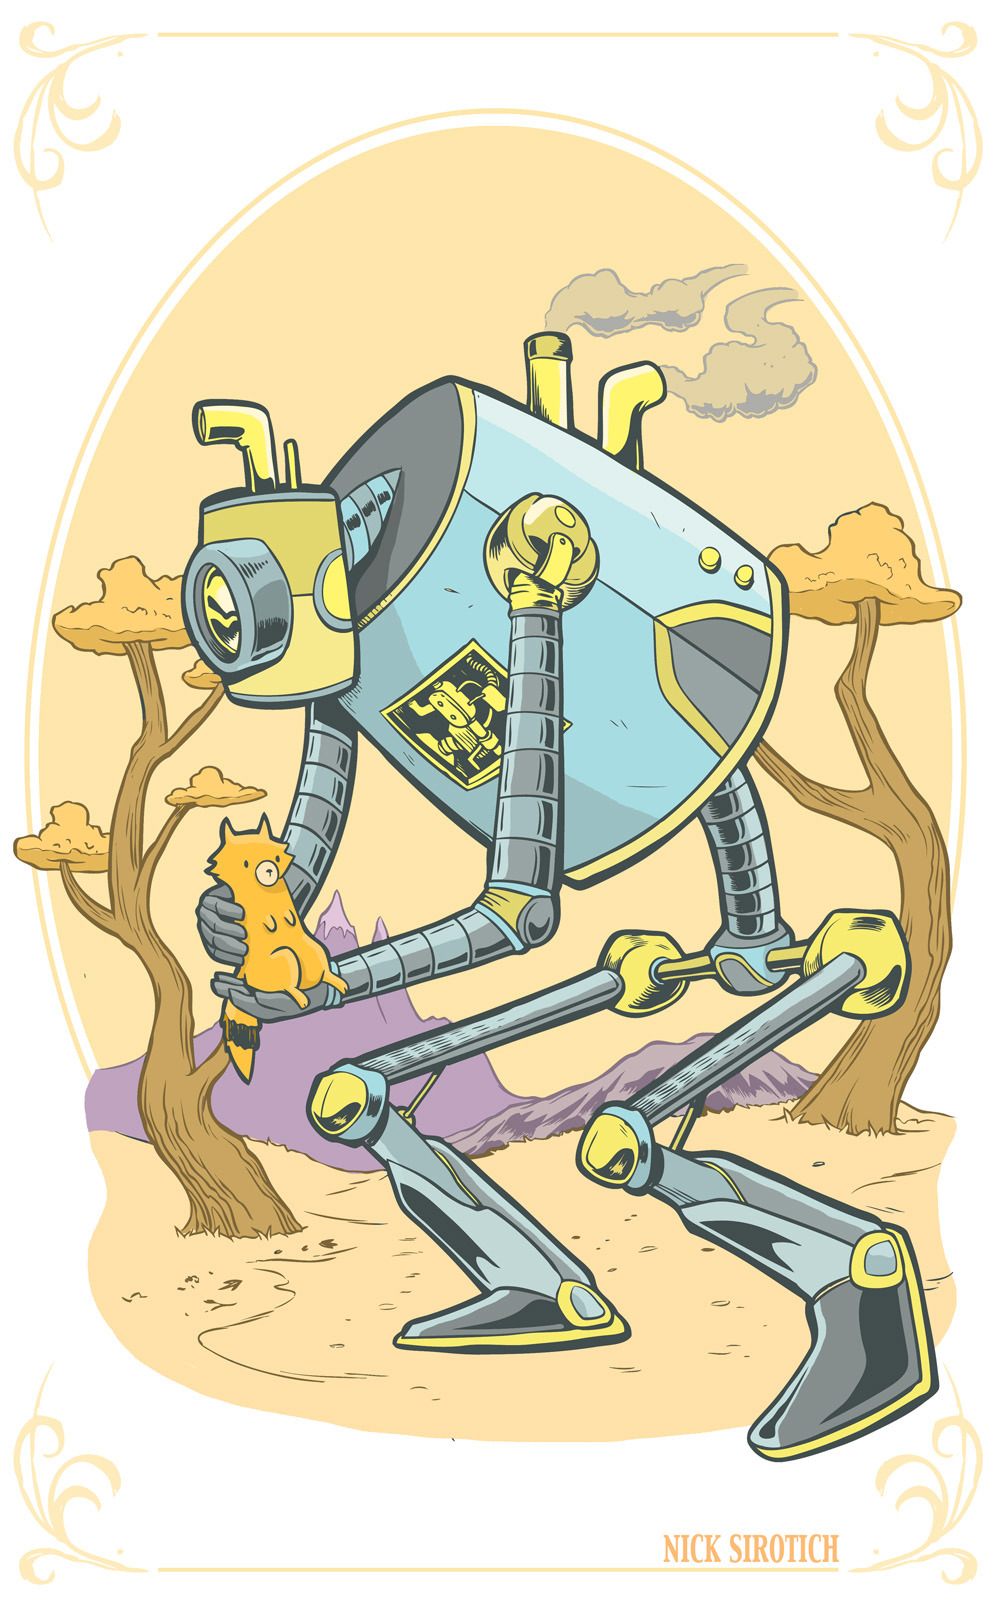 This mechanized monstrosity is the Fox-Bot. Designed to roam the forest outside the village creep finding sweet little foxes who've been abandoned and keep watch over their wellbeing. foxes roam wild amidst the forested creep borders and this beast is crucial to their well being and overall happiness.